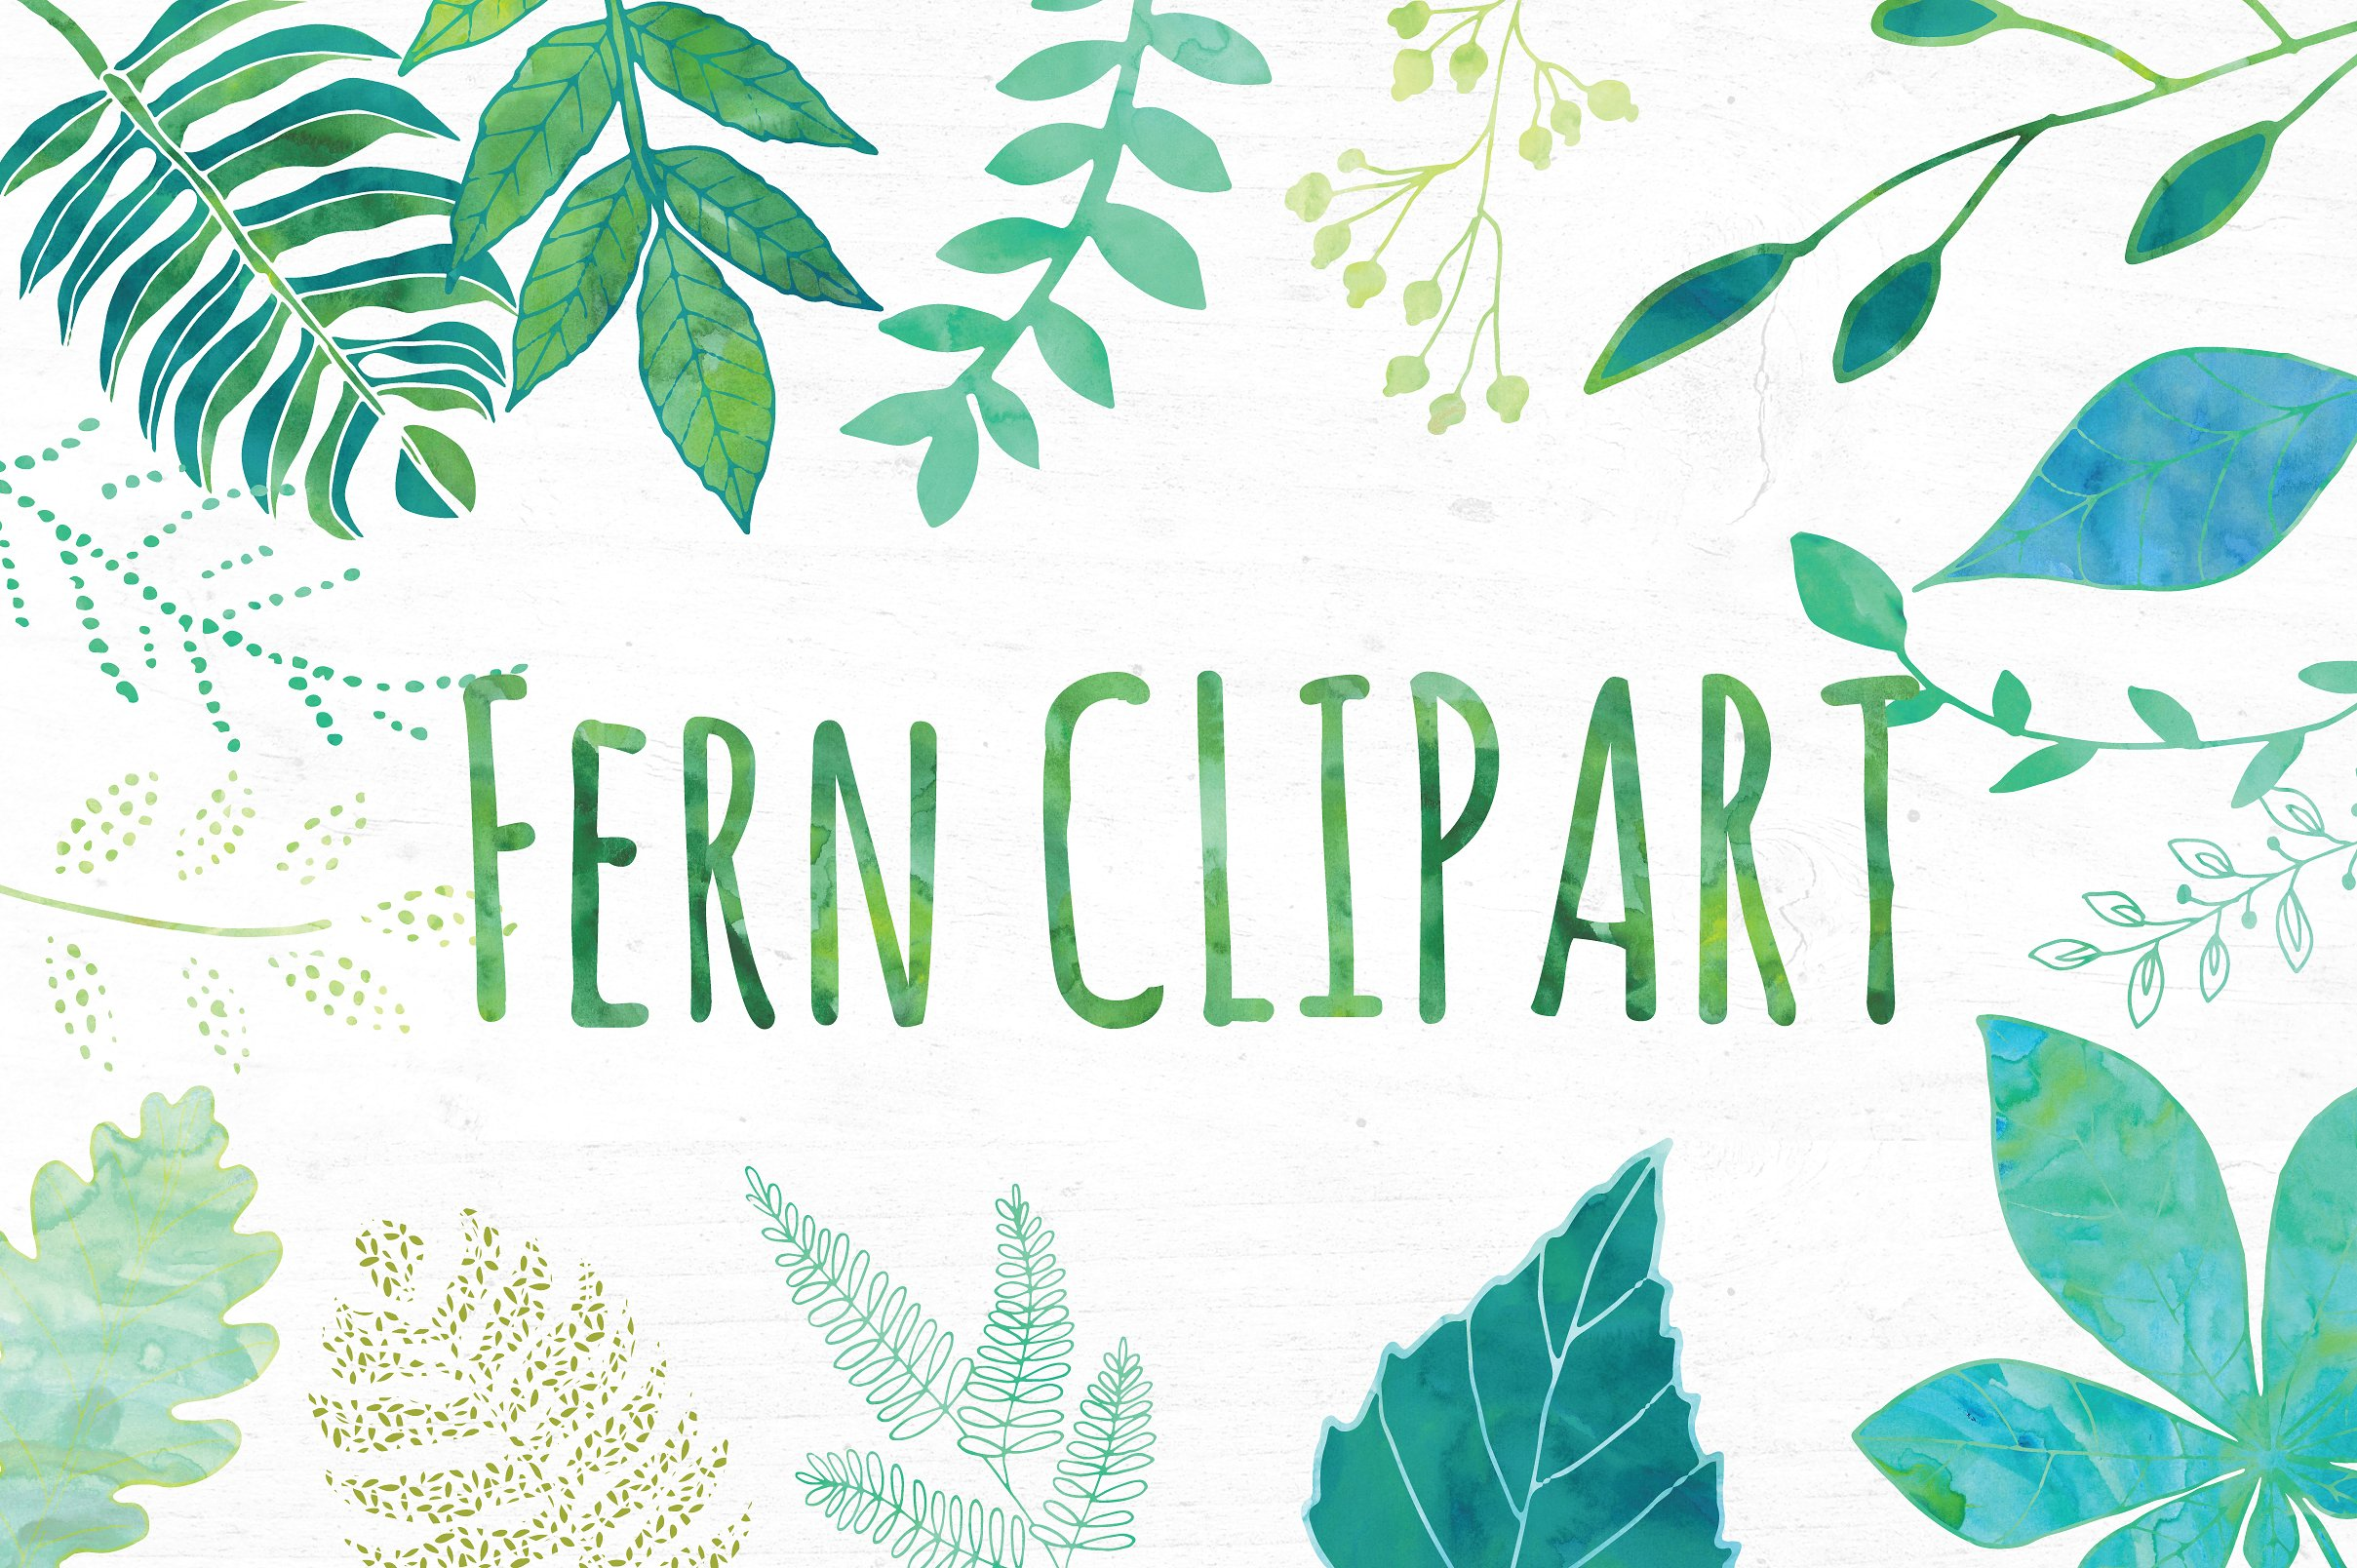 Fern clipart green fern. Watercolor leaf set illustrations